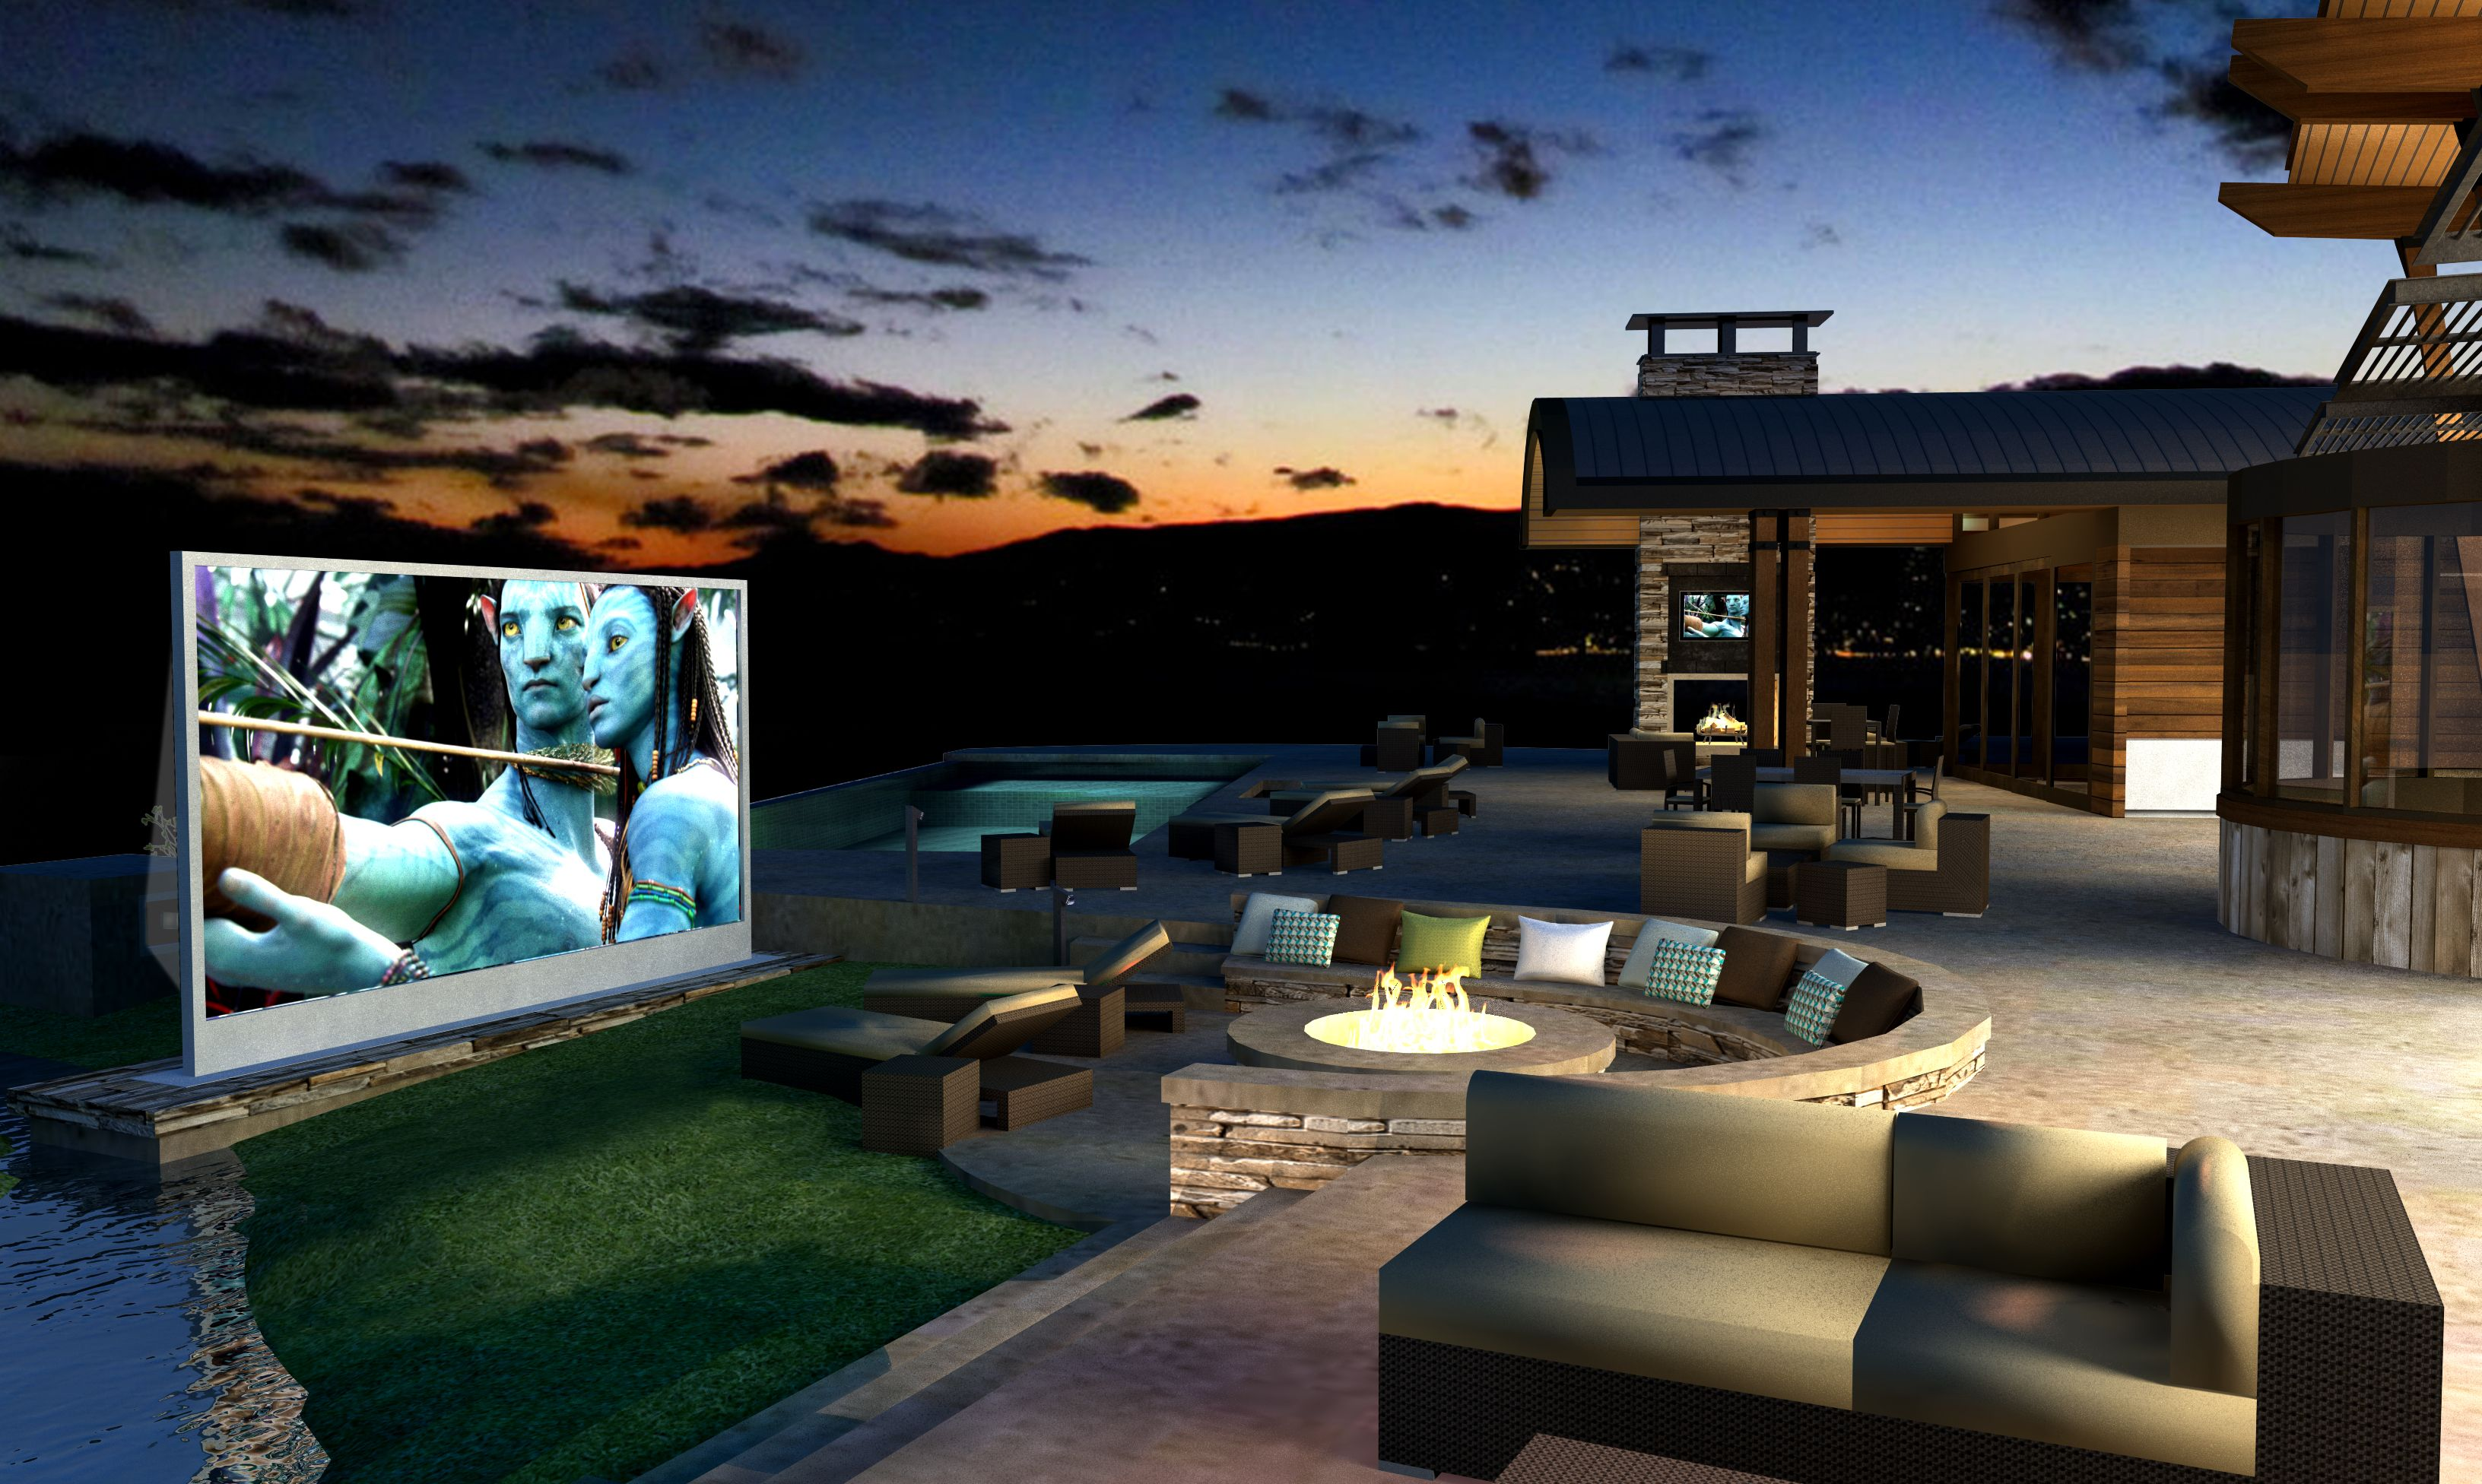 Bargains For Building Your Own Outdoor Movie Theater Home